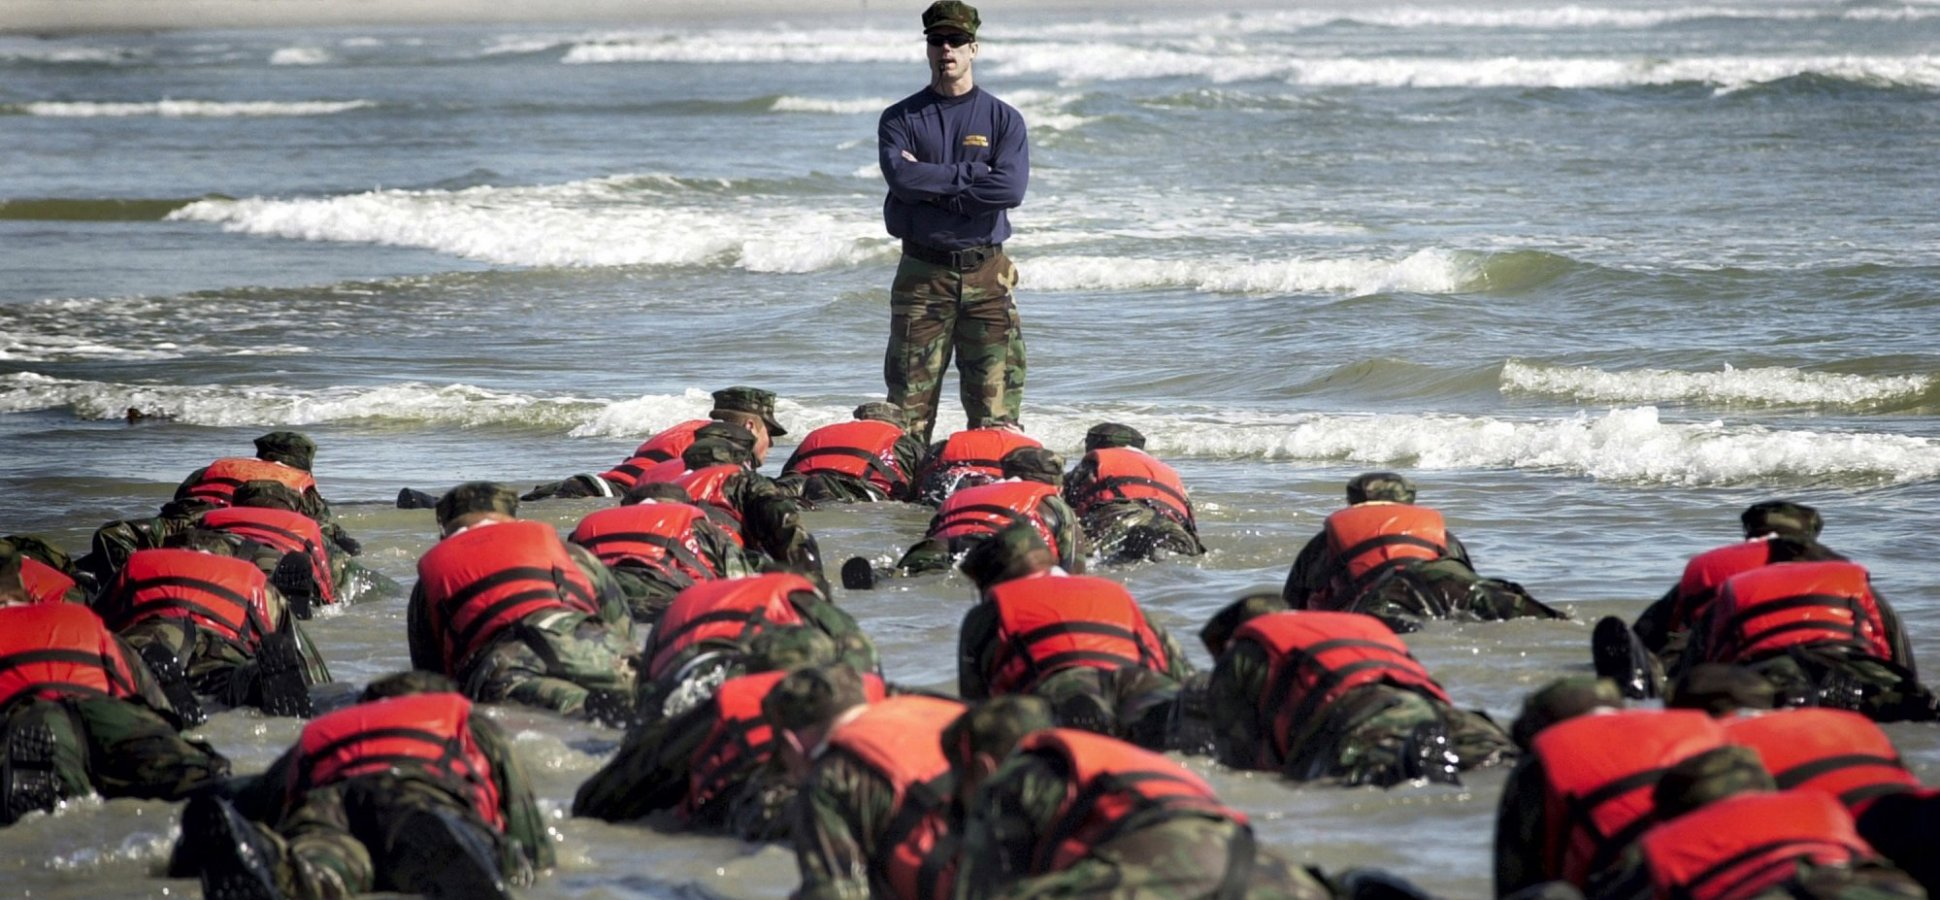 The U.S. Navy SEALs Are Suddenly Facing Some Incredibly Hard Problems. Their Top Commander Says the Solution Comes Down to 1 Simple Word